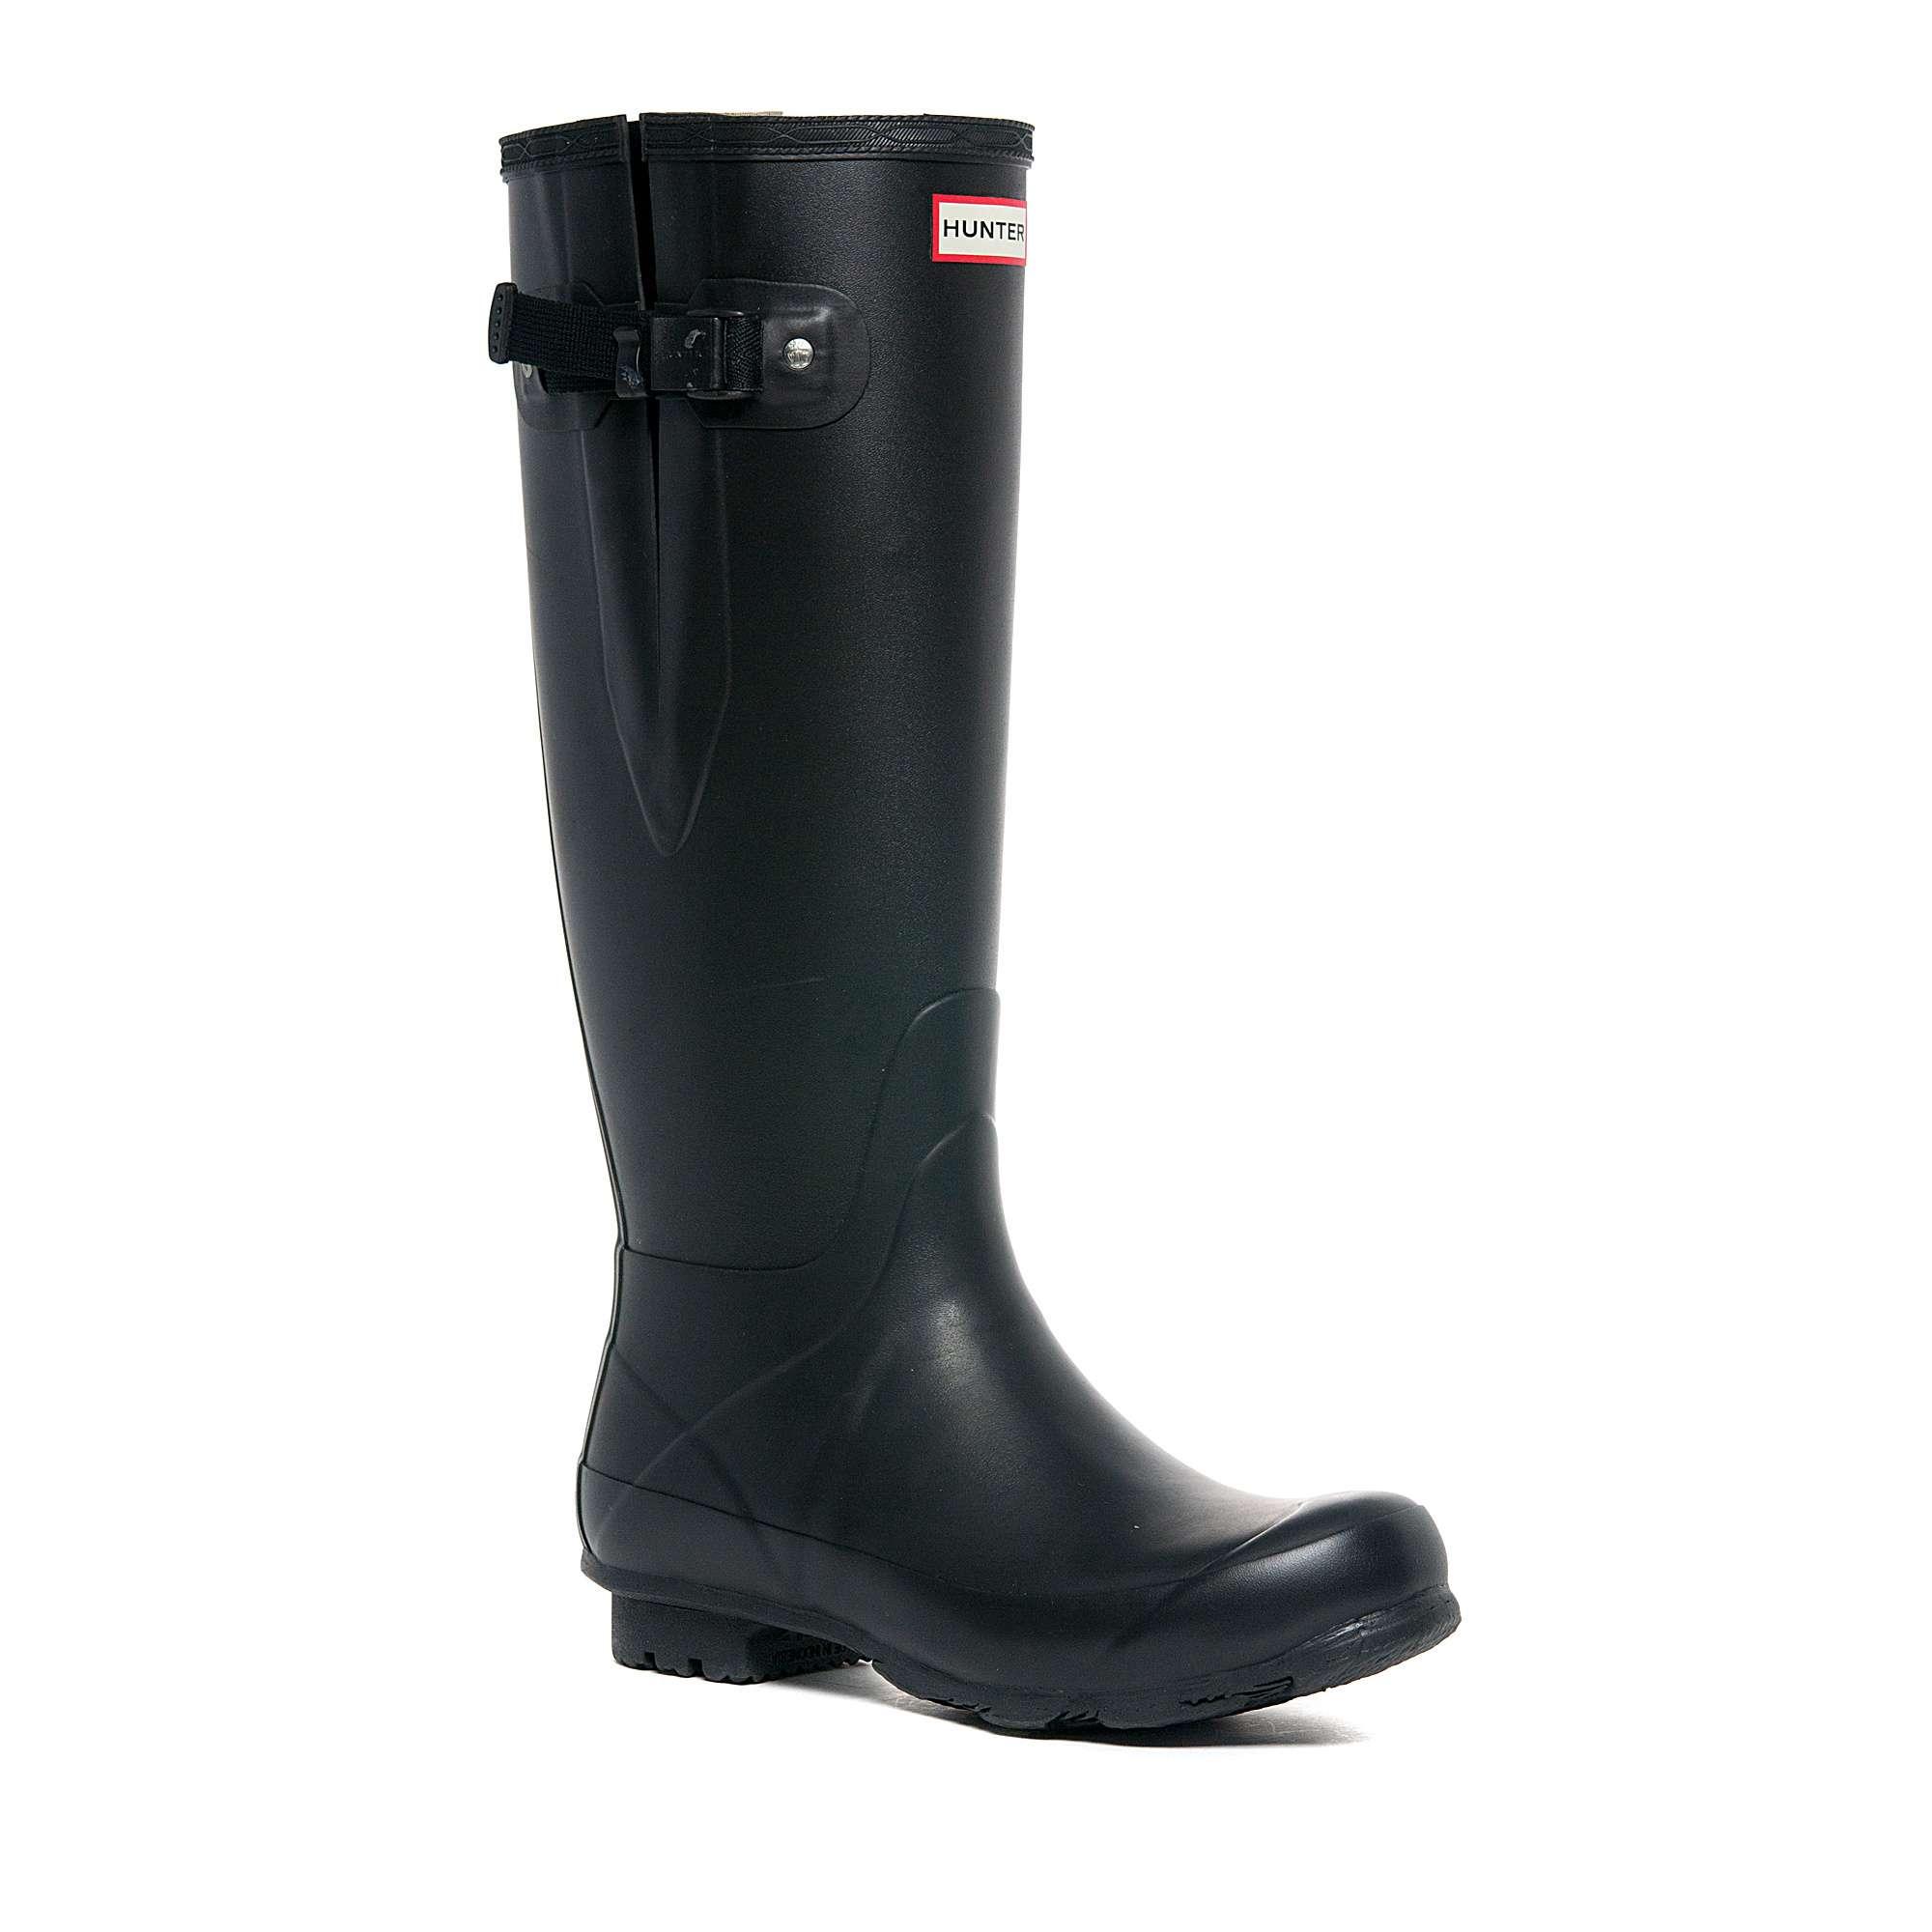 HUNTER Unisex Norris Field Adjustable Wellies